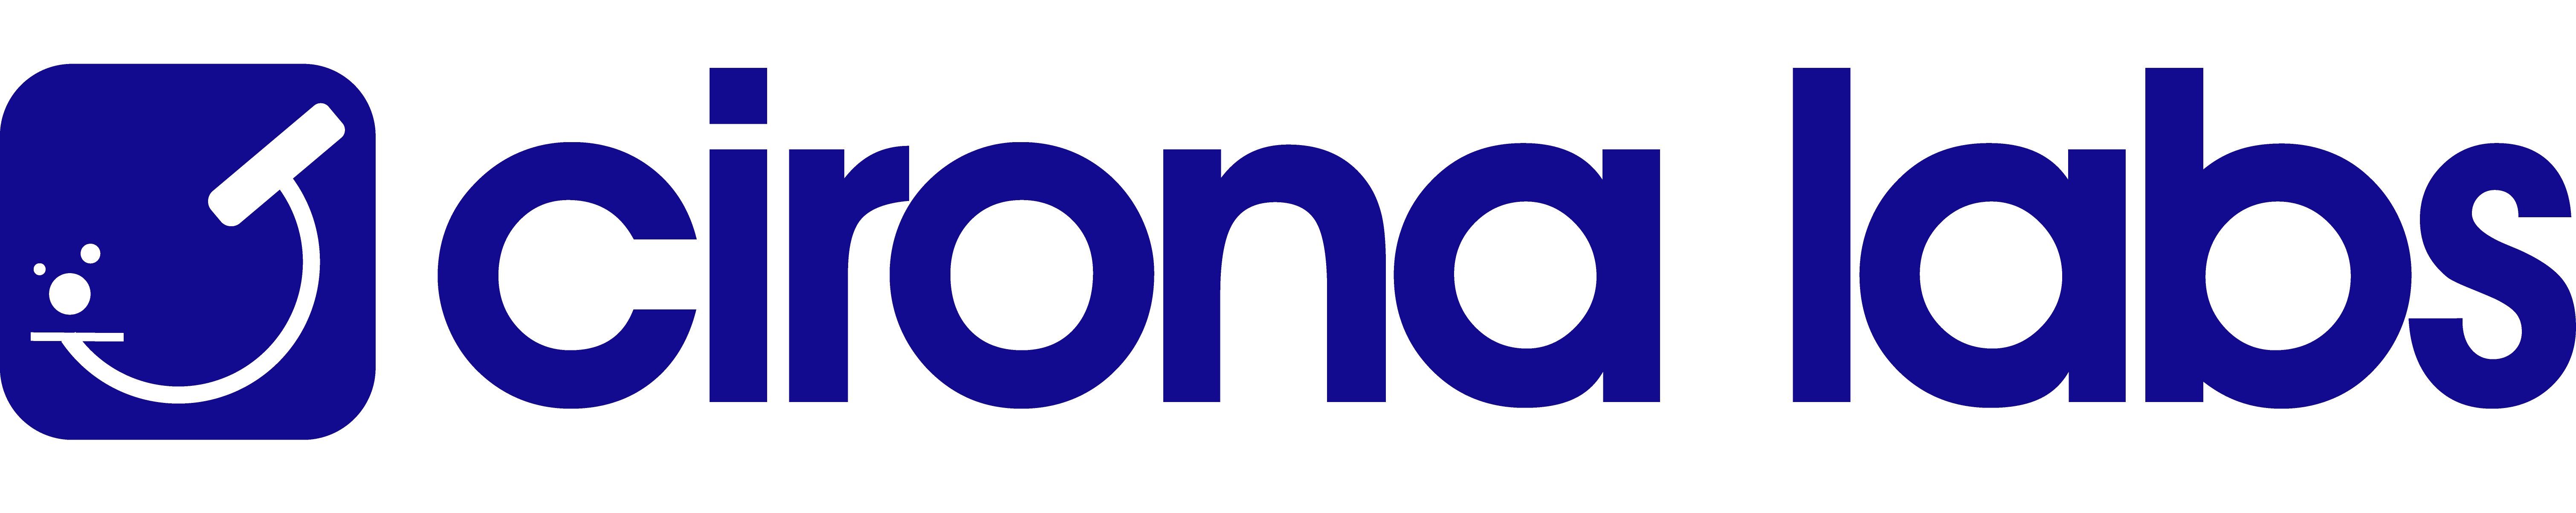 Cirona Labs - The Cutting Edge Solution